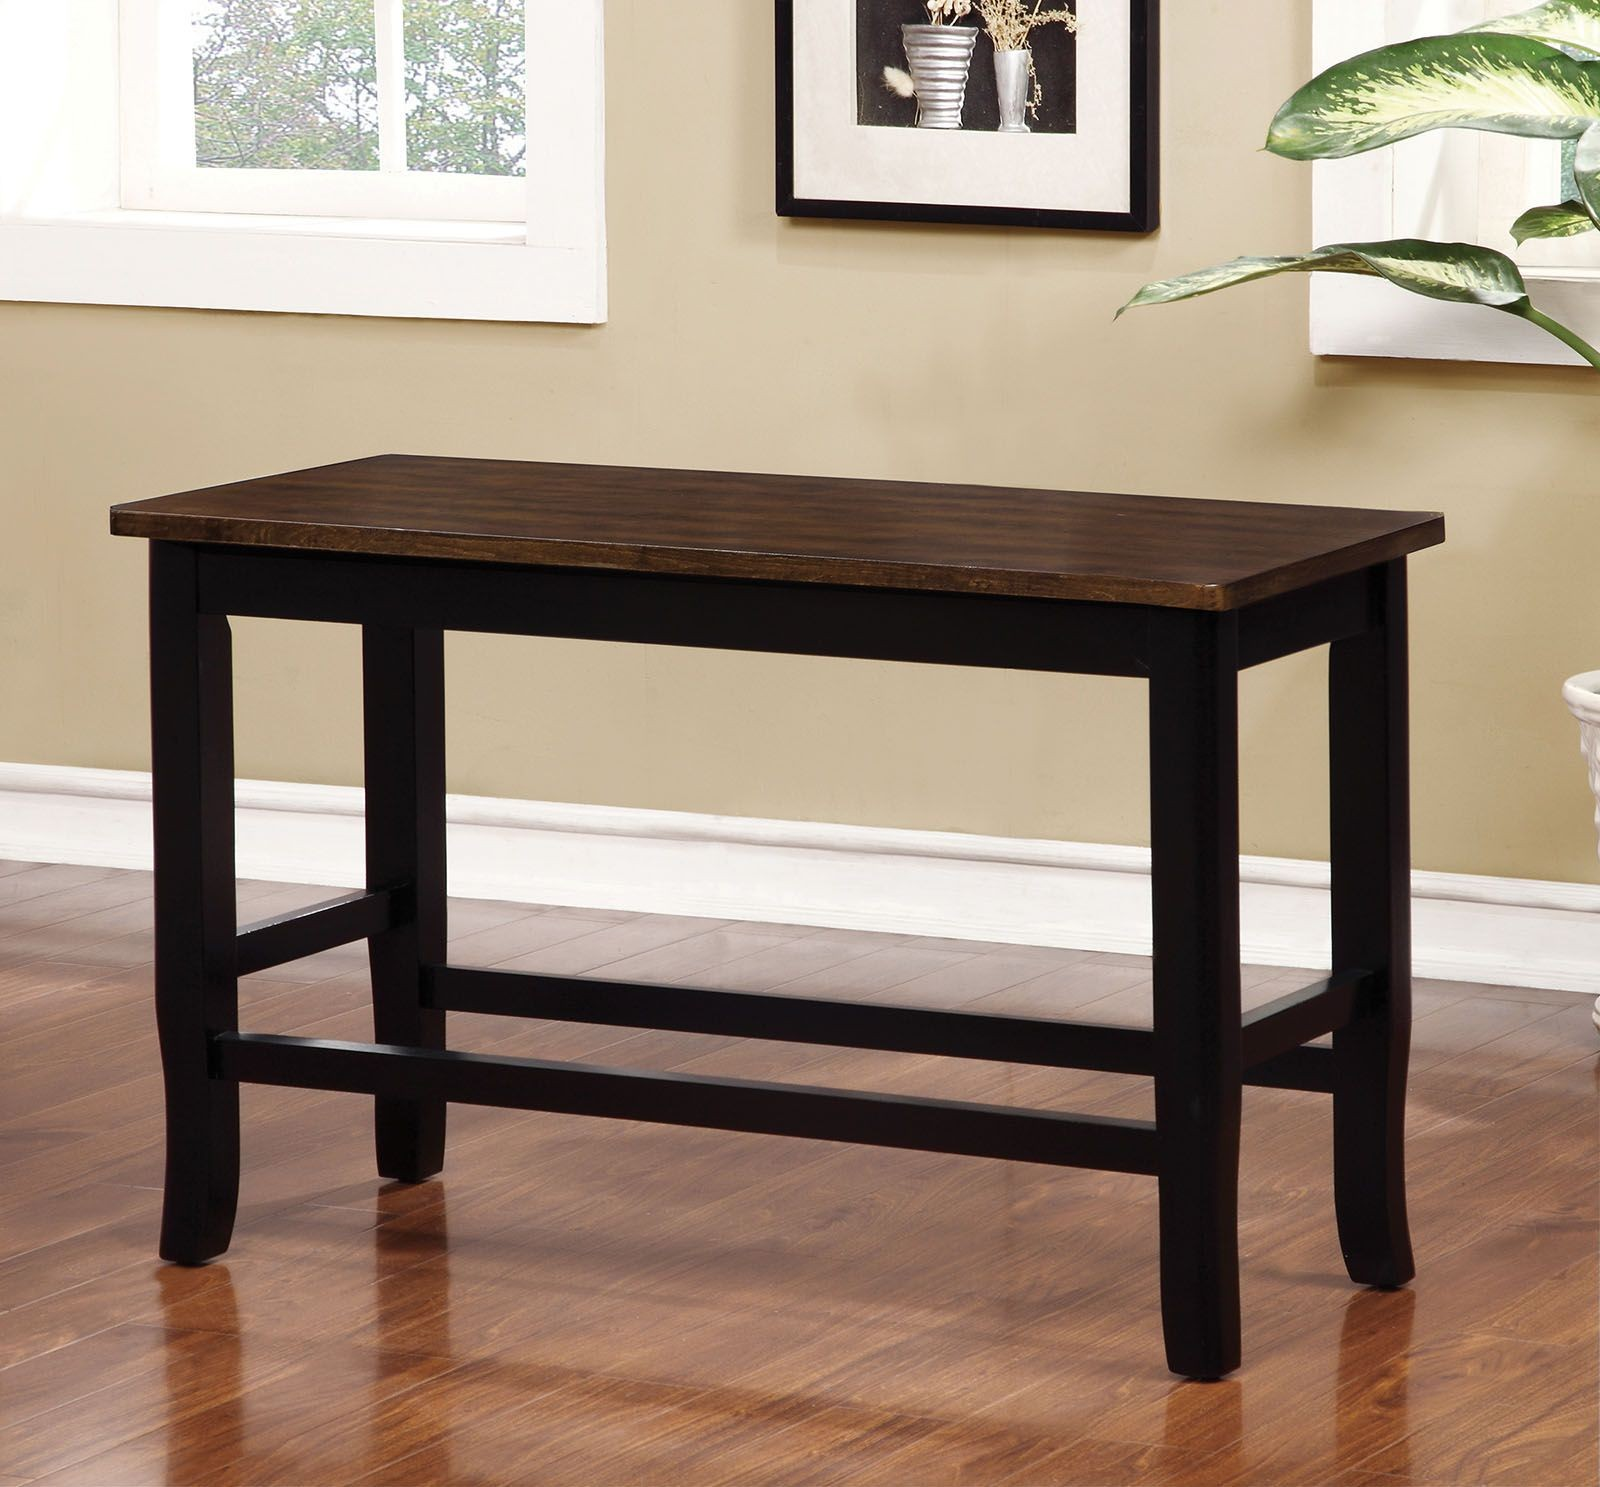 Dover Ii Black And Cherry Counter Height Bench From Furniture Of America Coleman Furniture